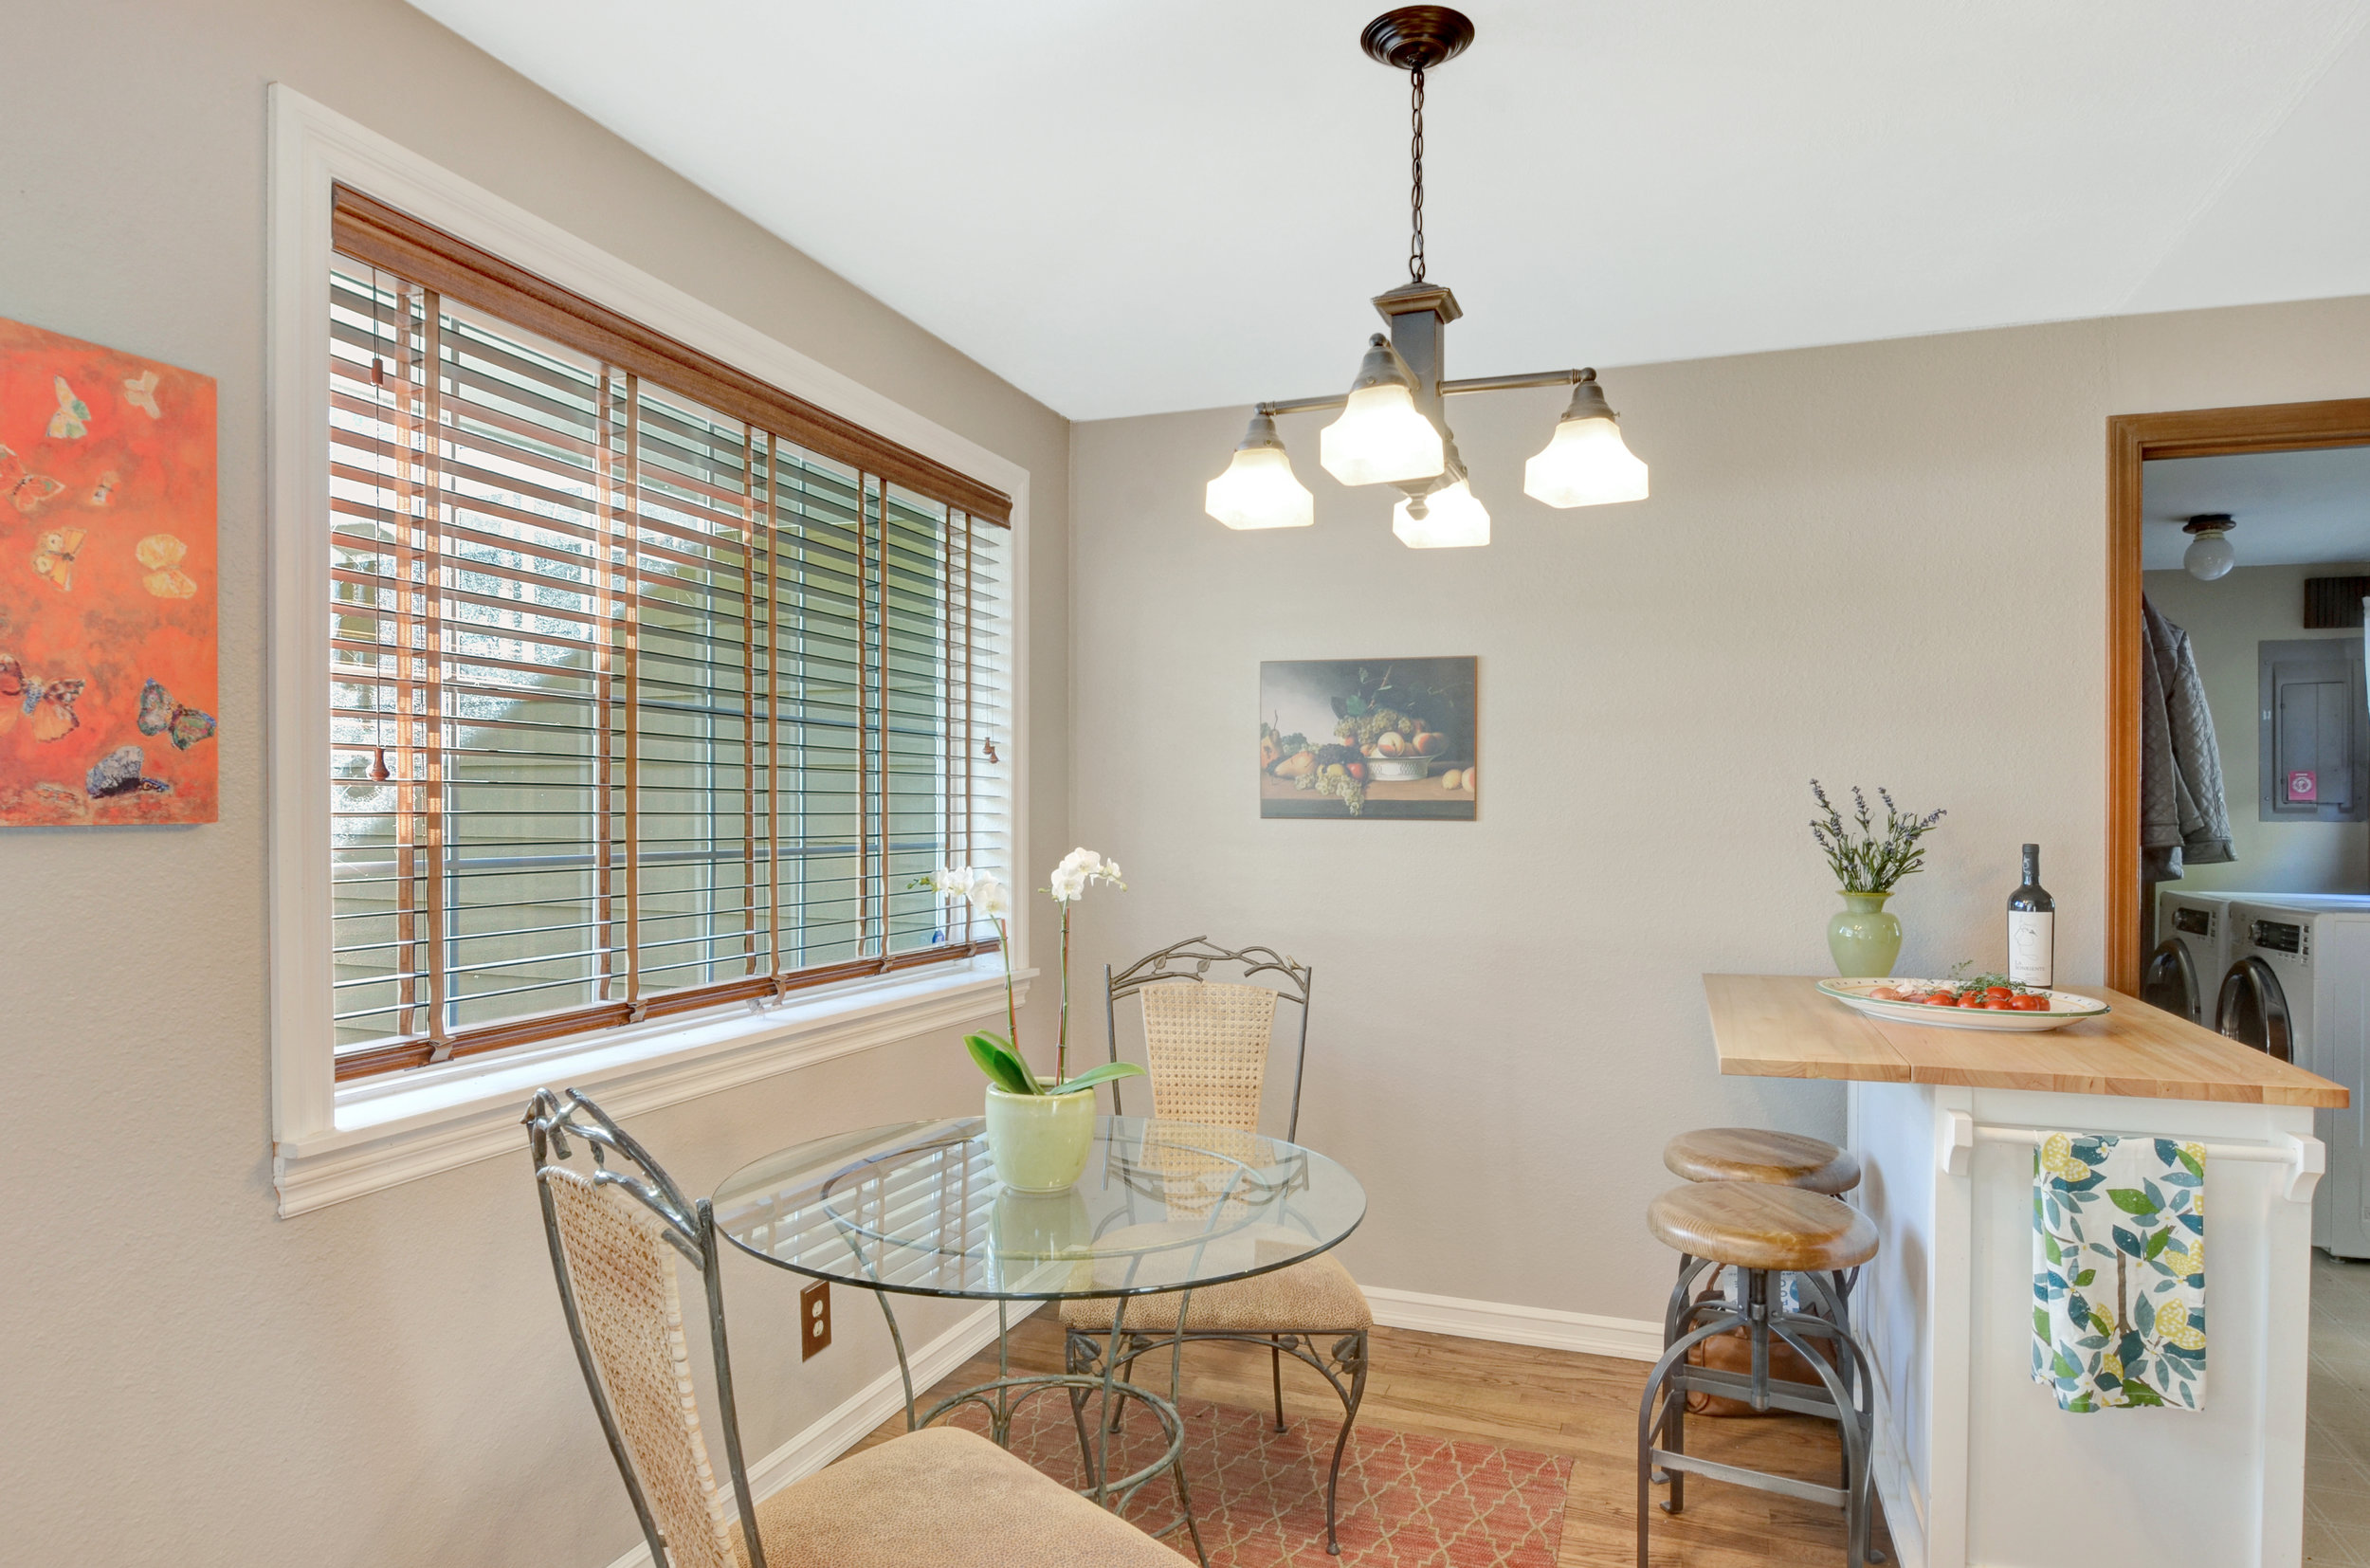 To the left of the front door, this area can be set up as the main dining area, or can be used as shown here with a mobile kitchen island and smaller breakfast table.